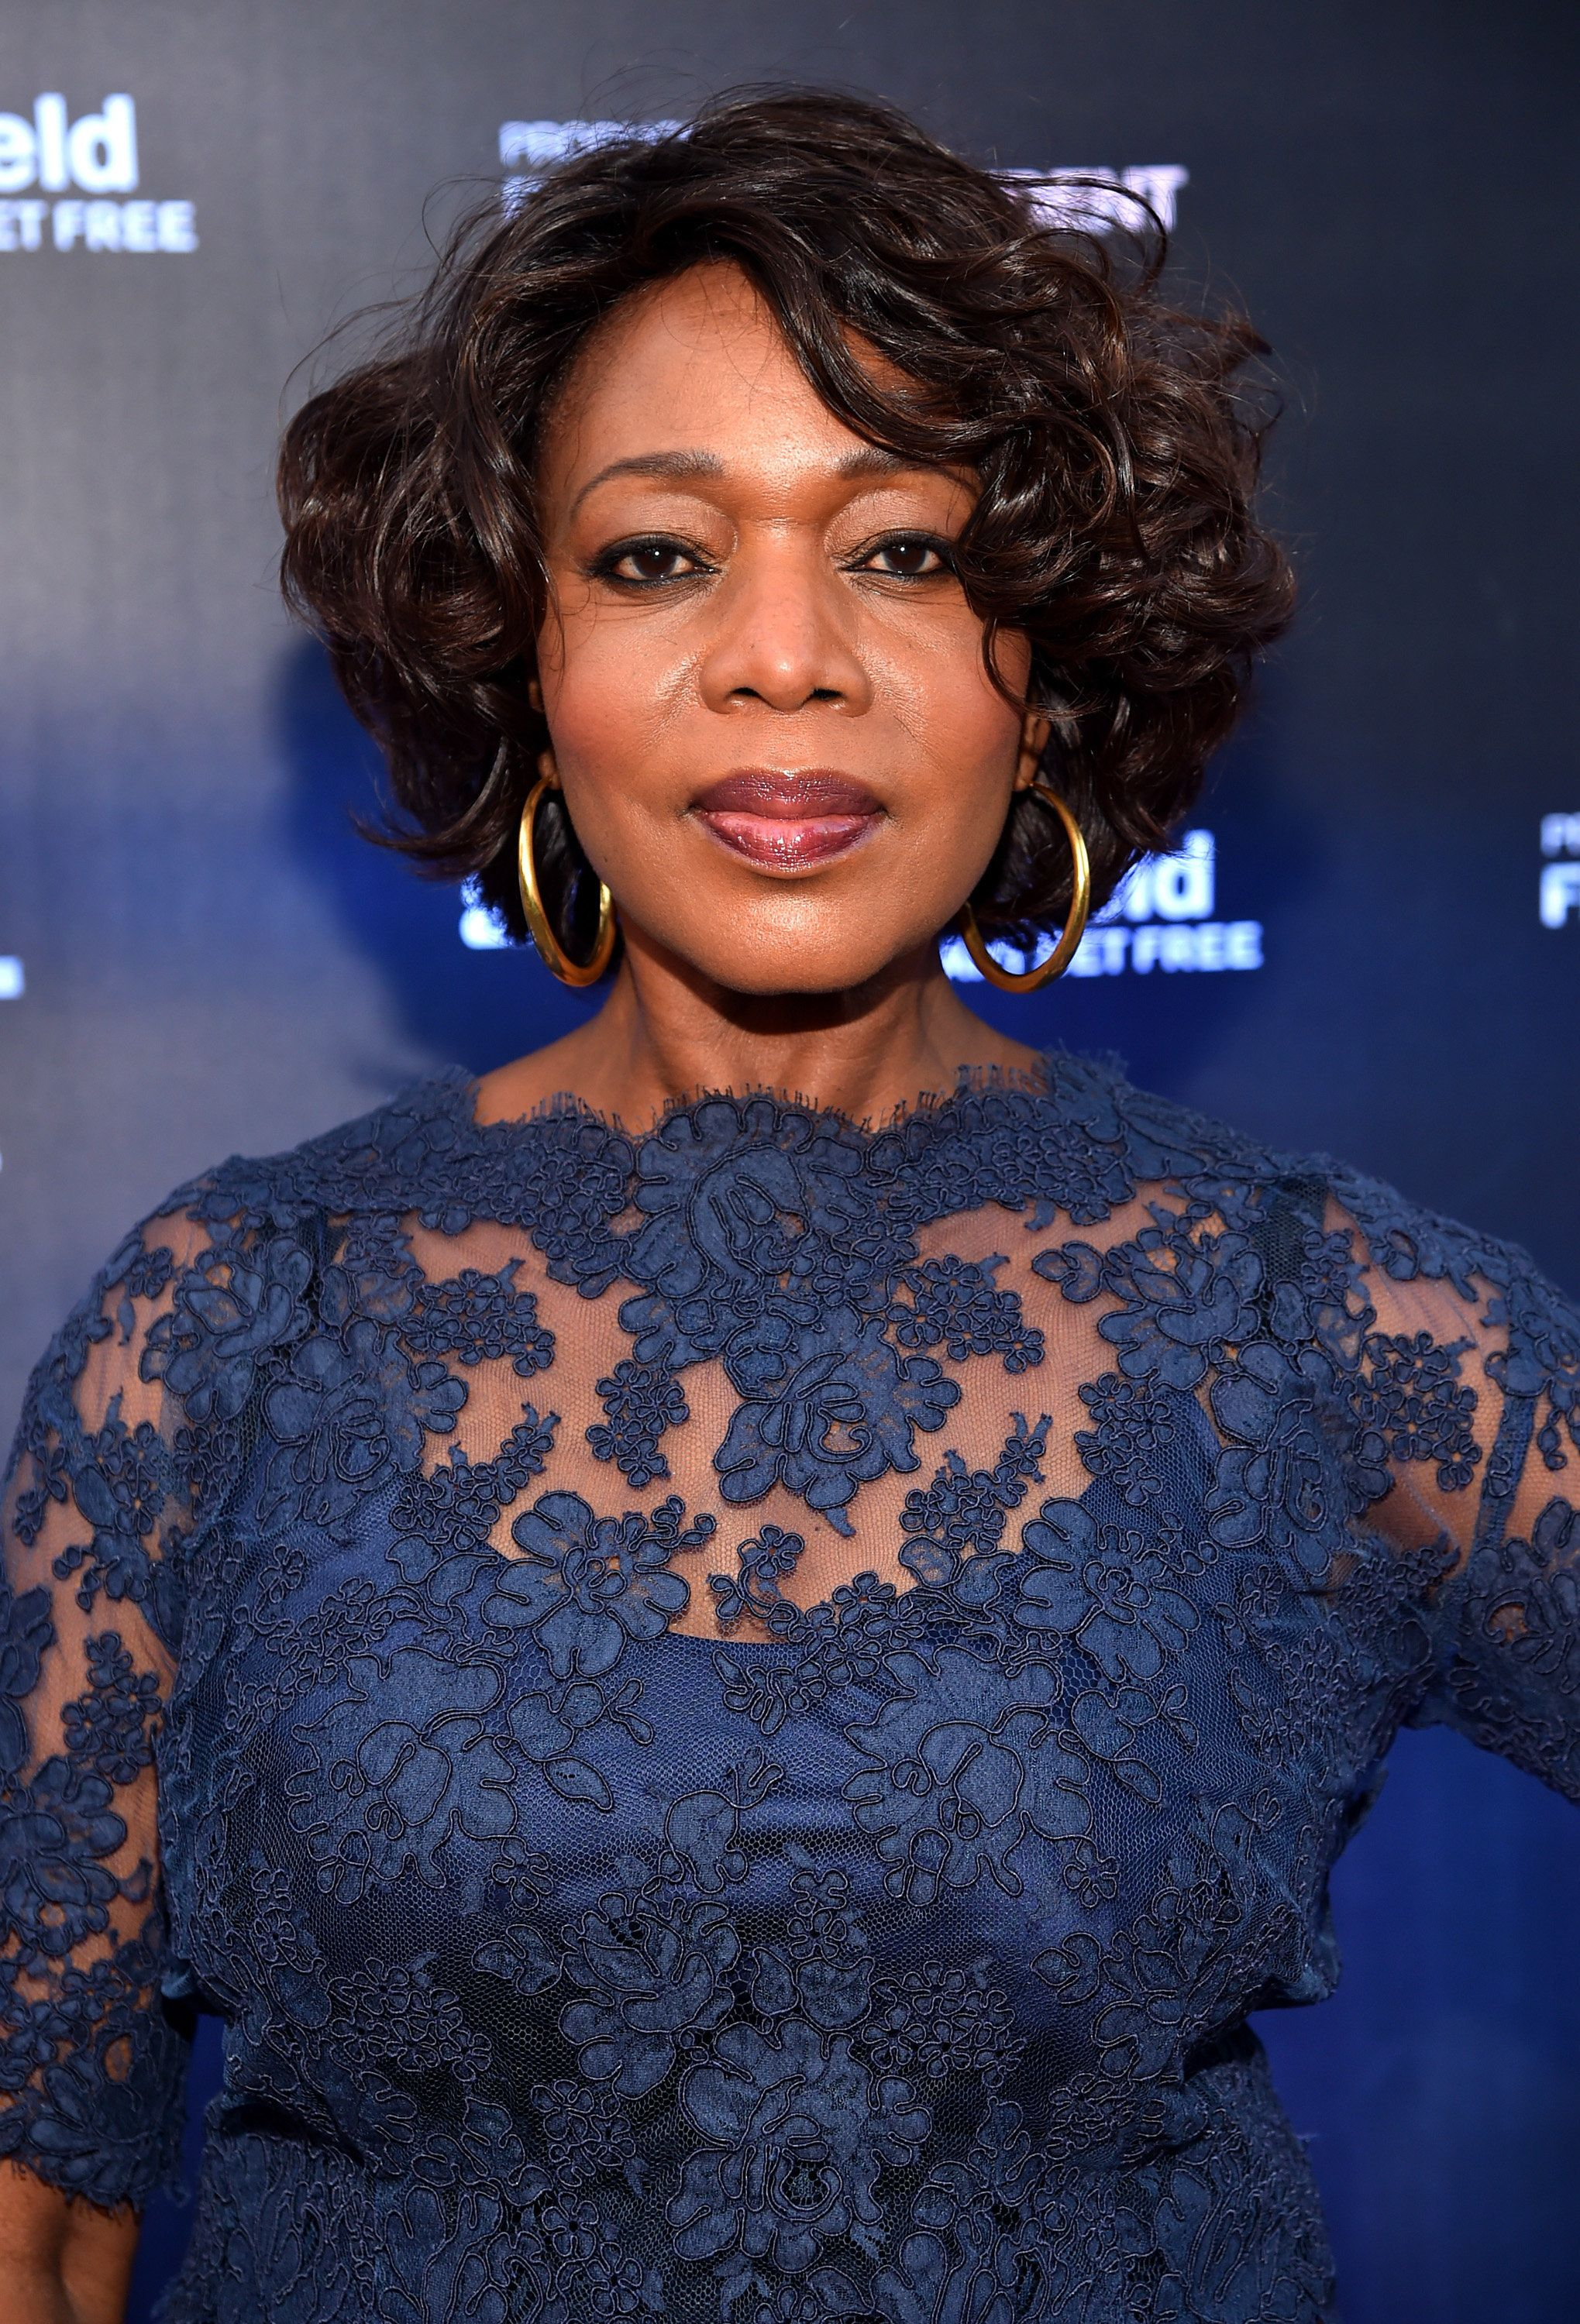 LOS ANGELES, CA - JUNE 13: Actress Alfre Woodard attends the 'Love and Basketball' screening during the 2015 Los Angeles Film Festival at Regal Cinemas L.A. Live on June 13, 2015 in Los Angeles, California.  (Photo by Alberto E. Rodriguez/WireImage)